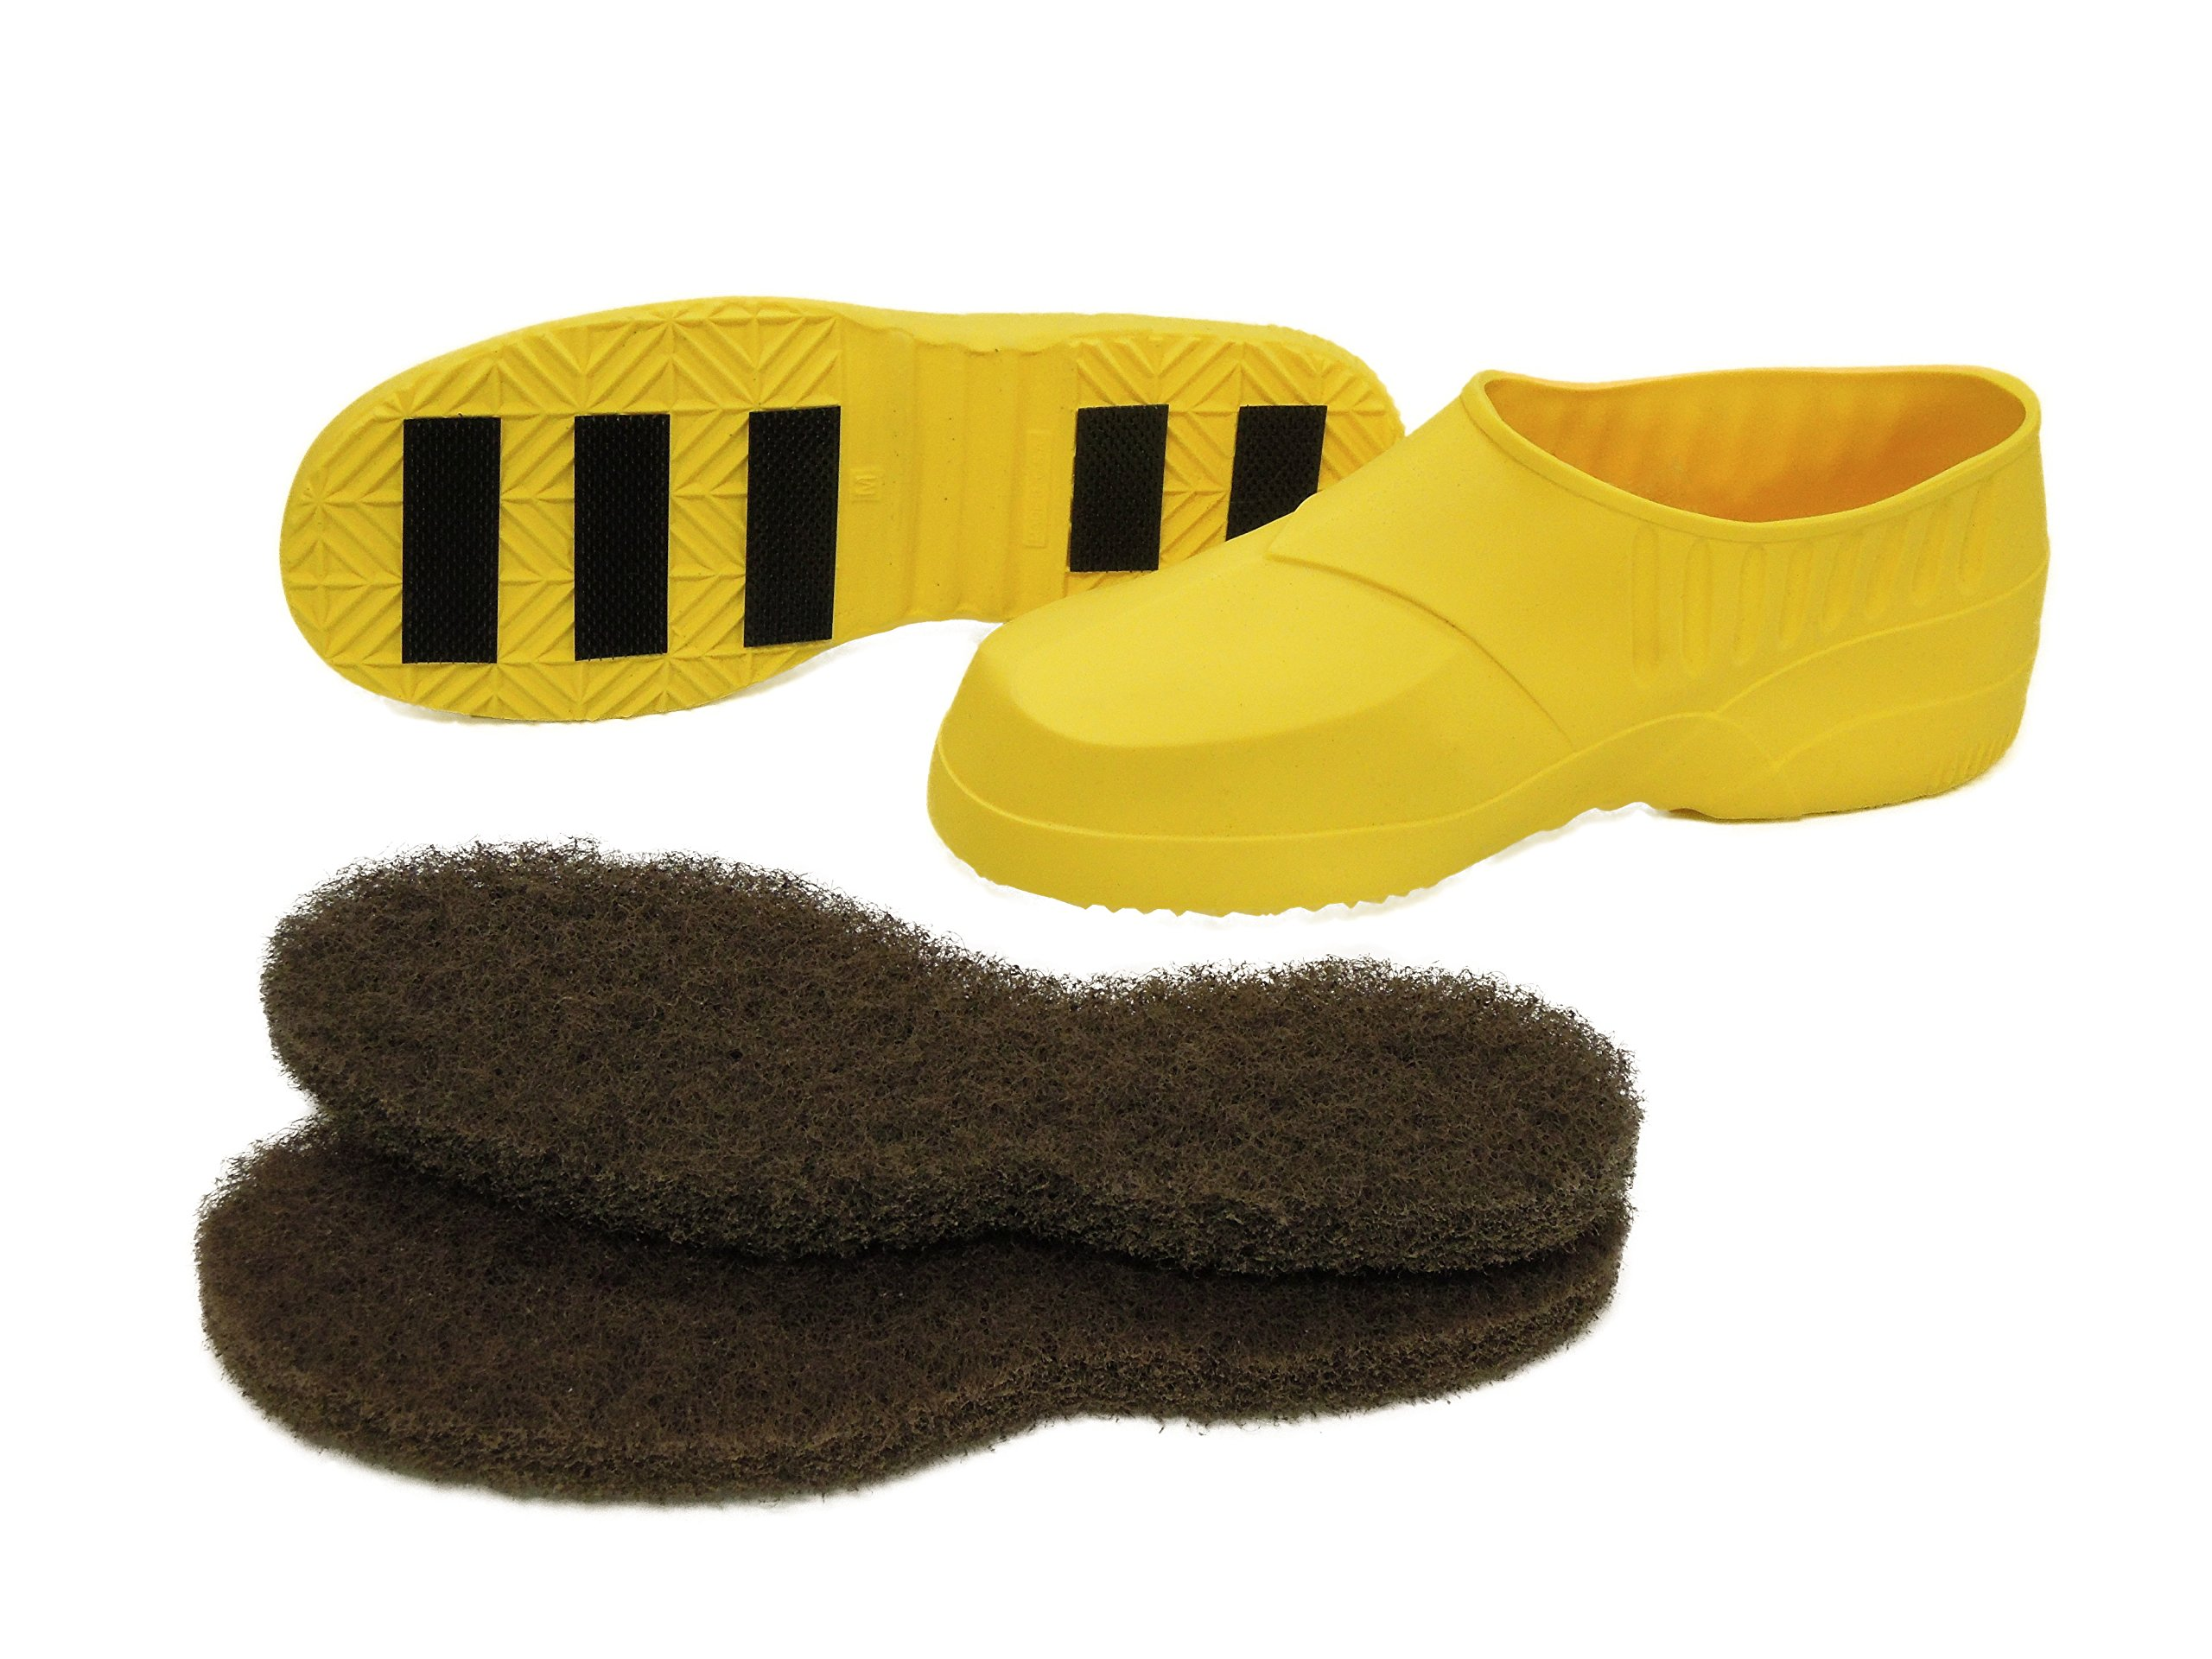 Glit/Microtron 408003 Stripping Boots with Protective Shoe Cover, Large, Yellow (Pack of 2)